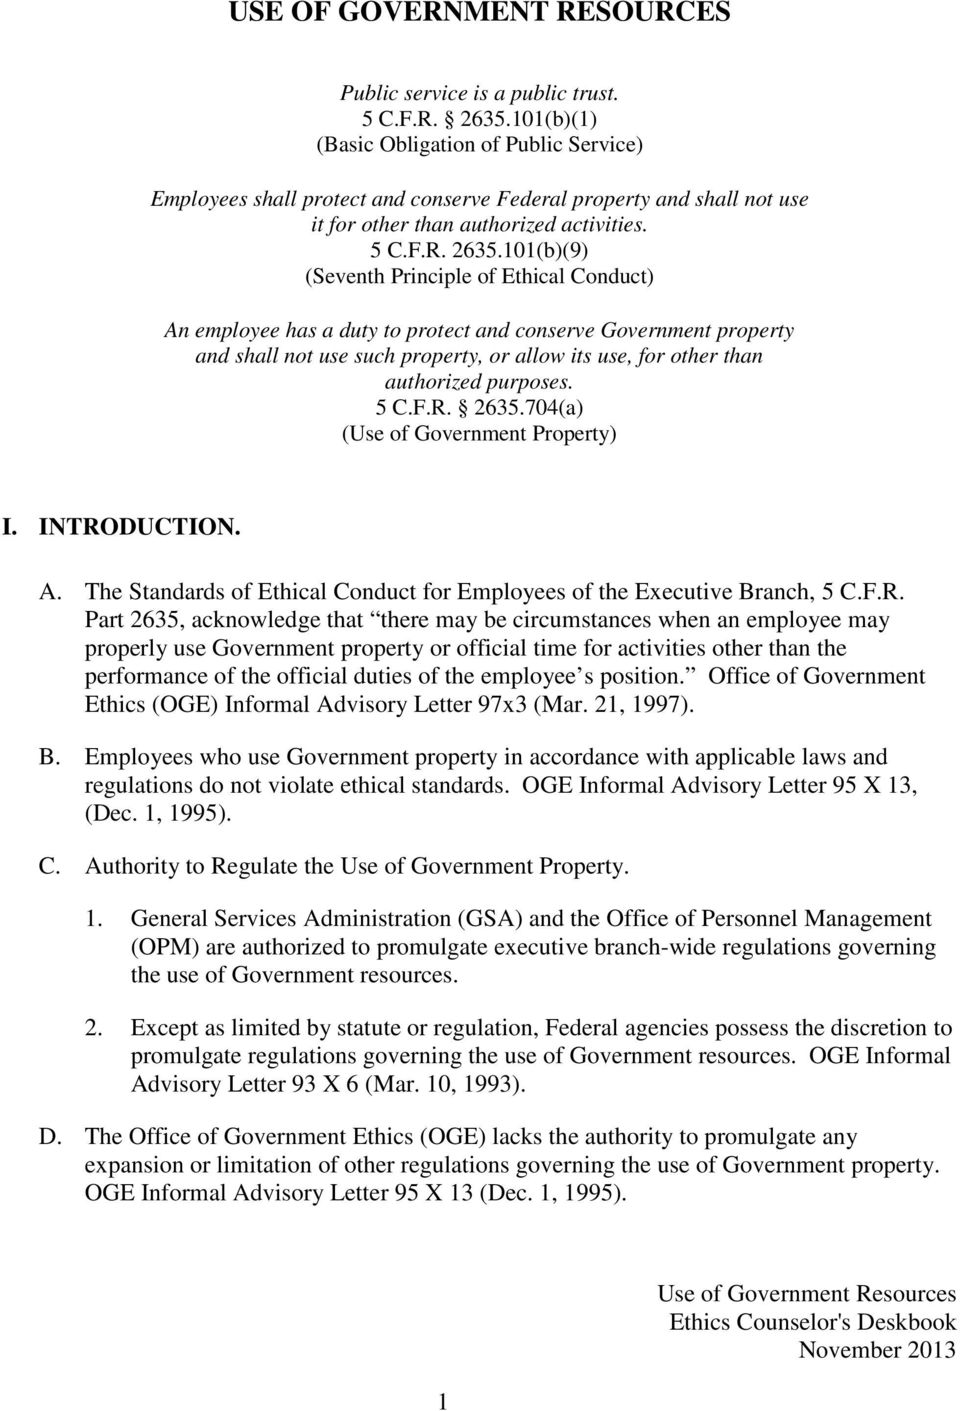 101(b)(9) (Seventh Principle of Ethical Conduct) An employee has a duty to protect and conserve Government property and shall not use such property, or allow its use, for other than authorized